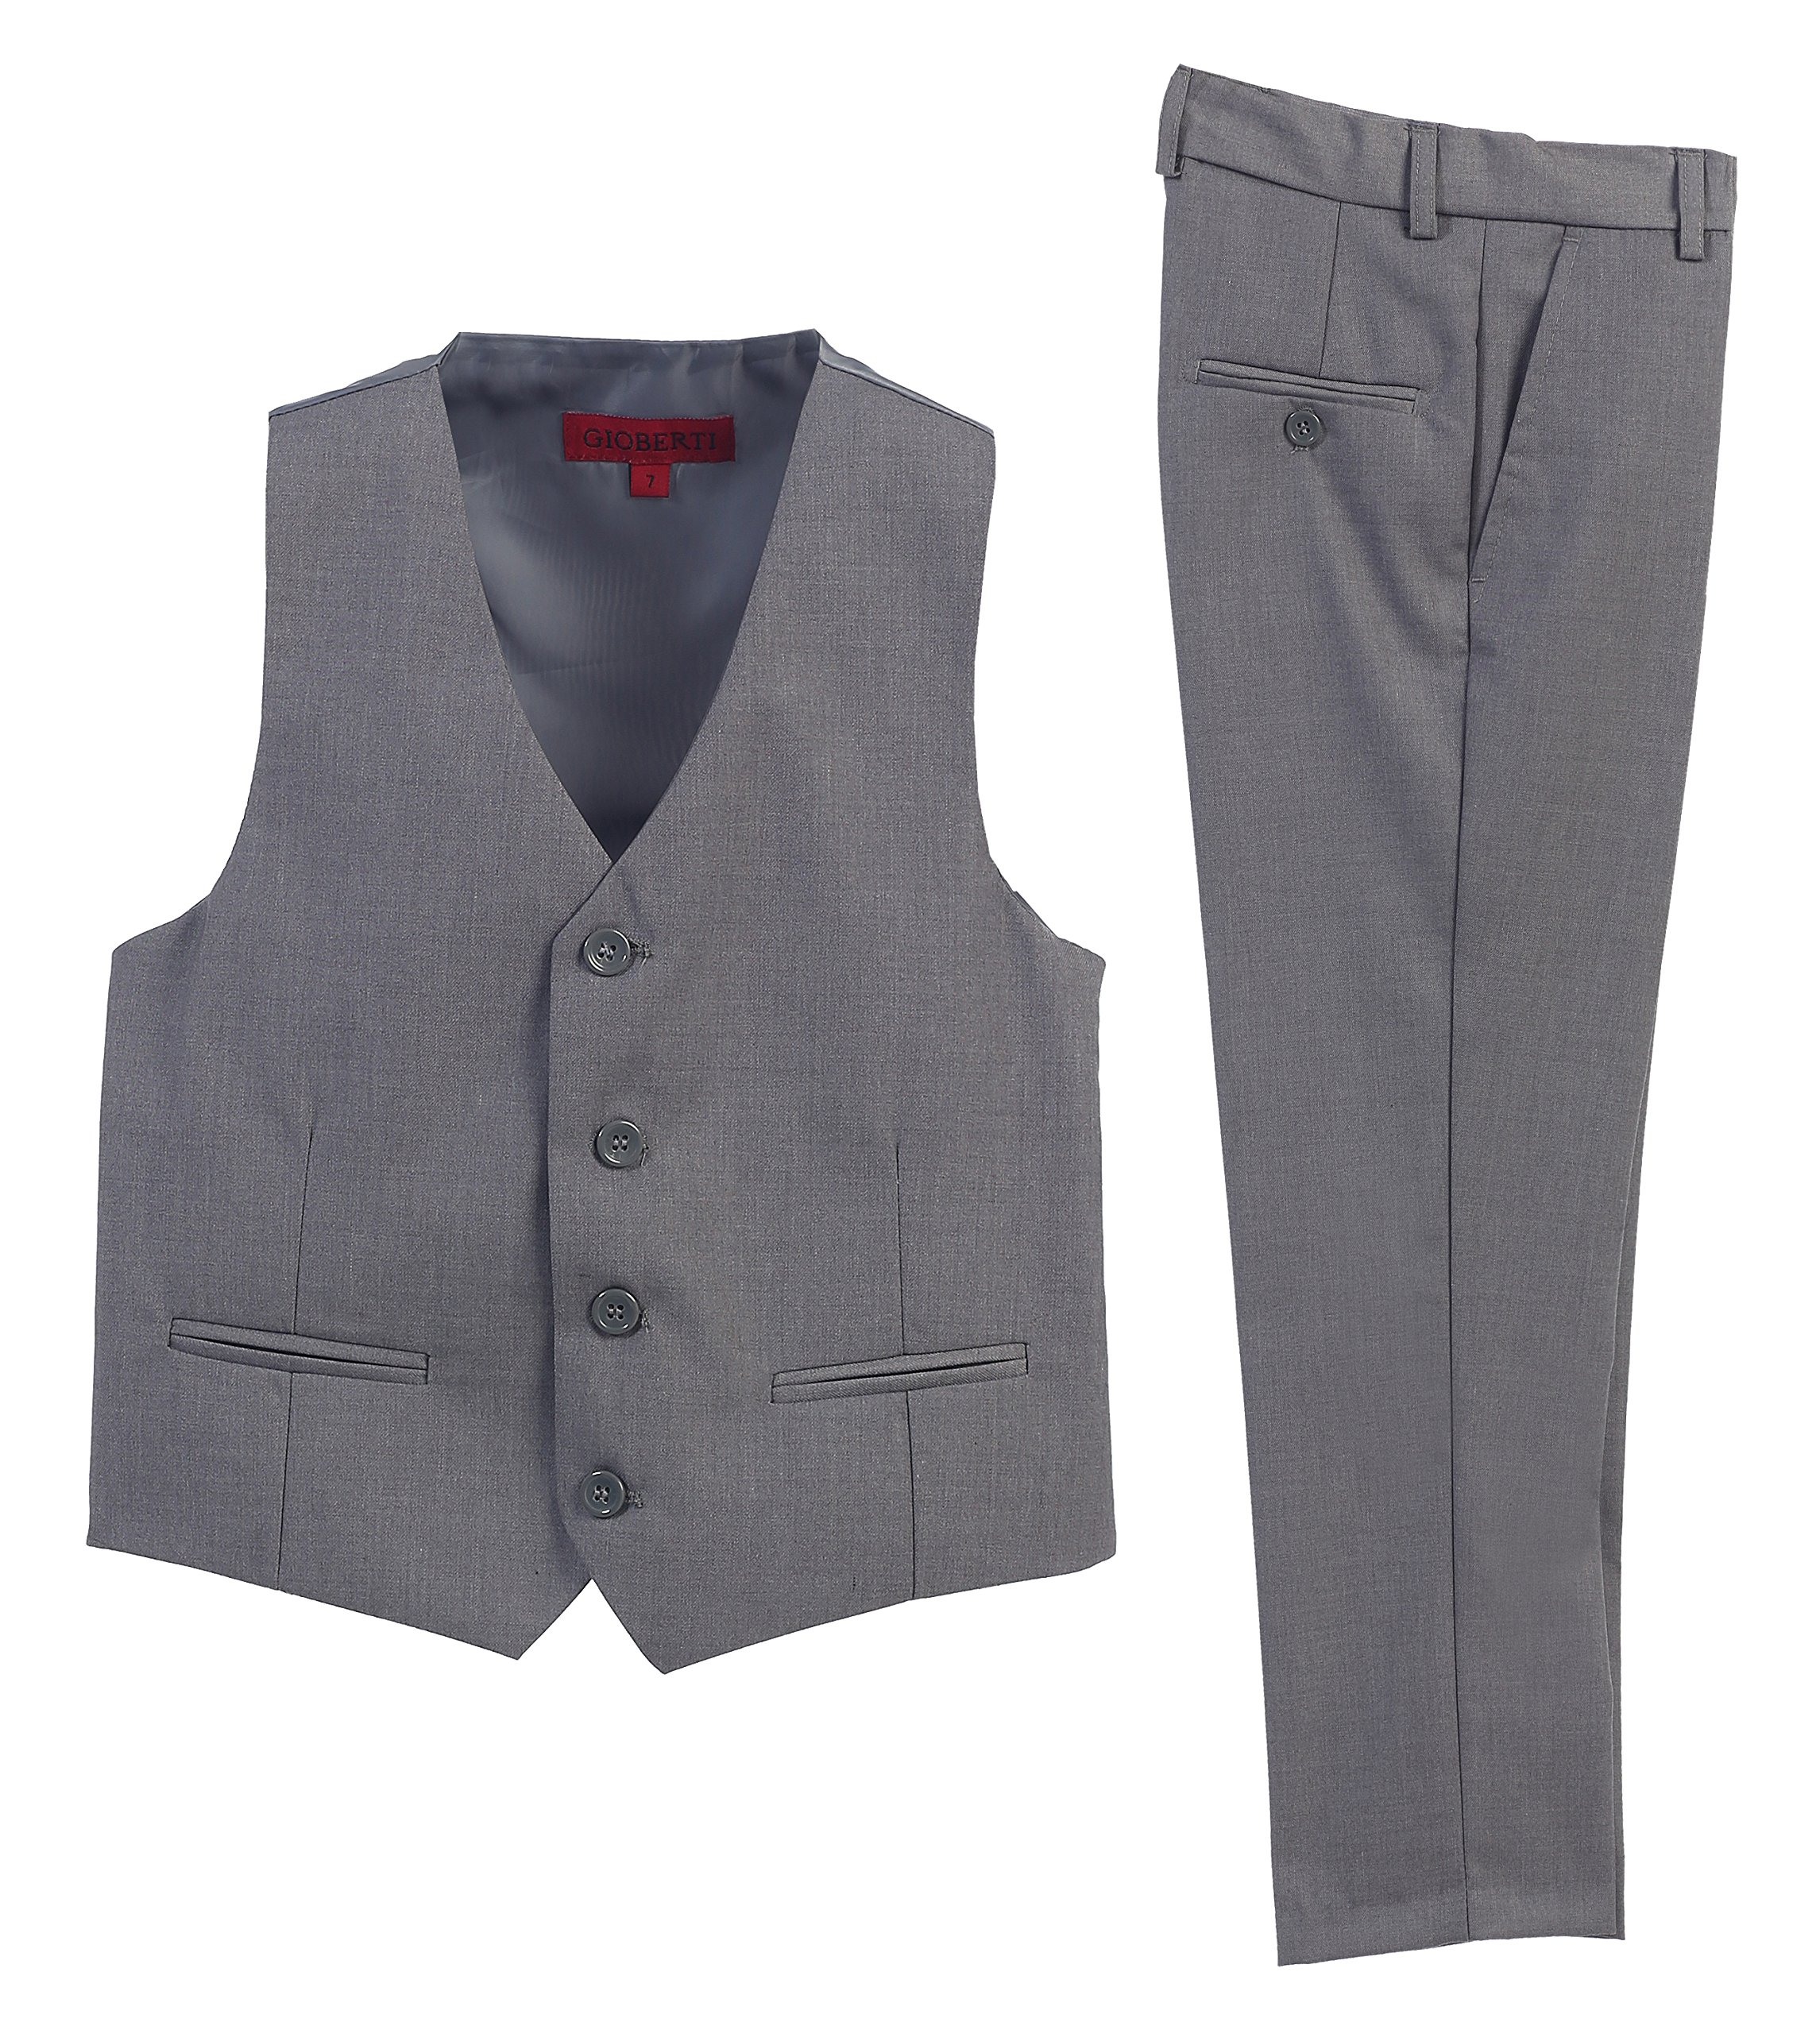 2 Piece Kids Boys Gray Vest and Pants Formal Set, 5